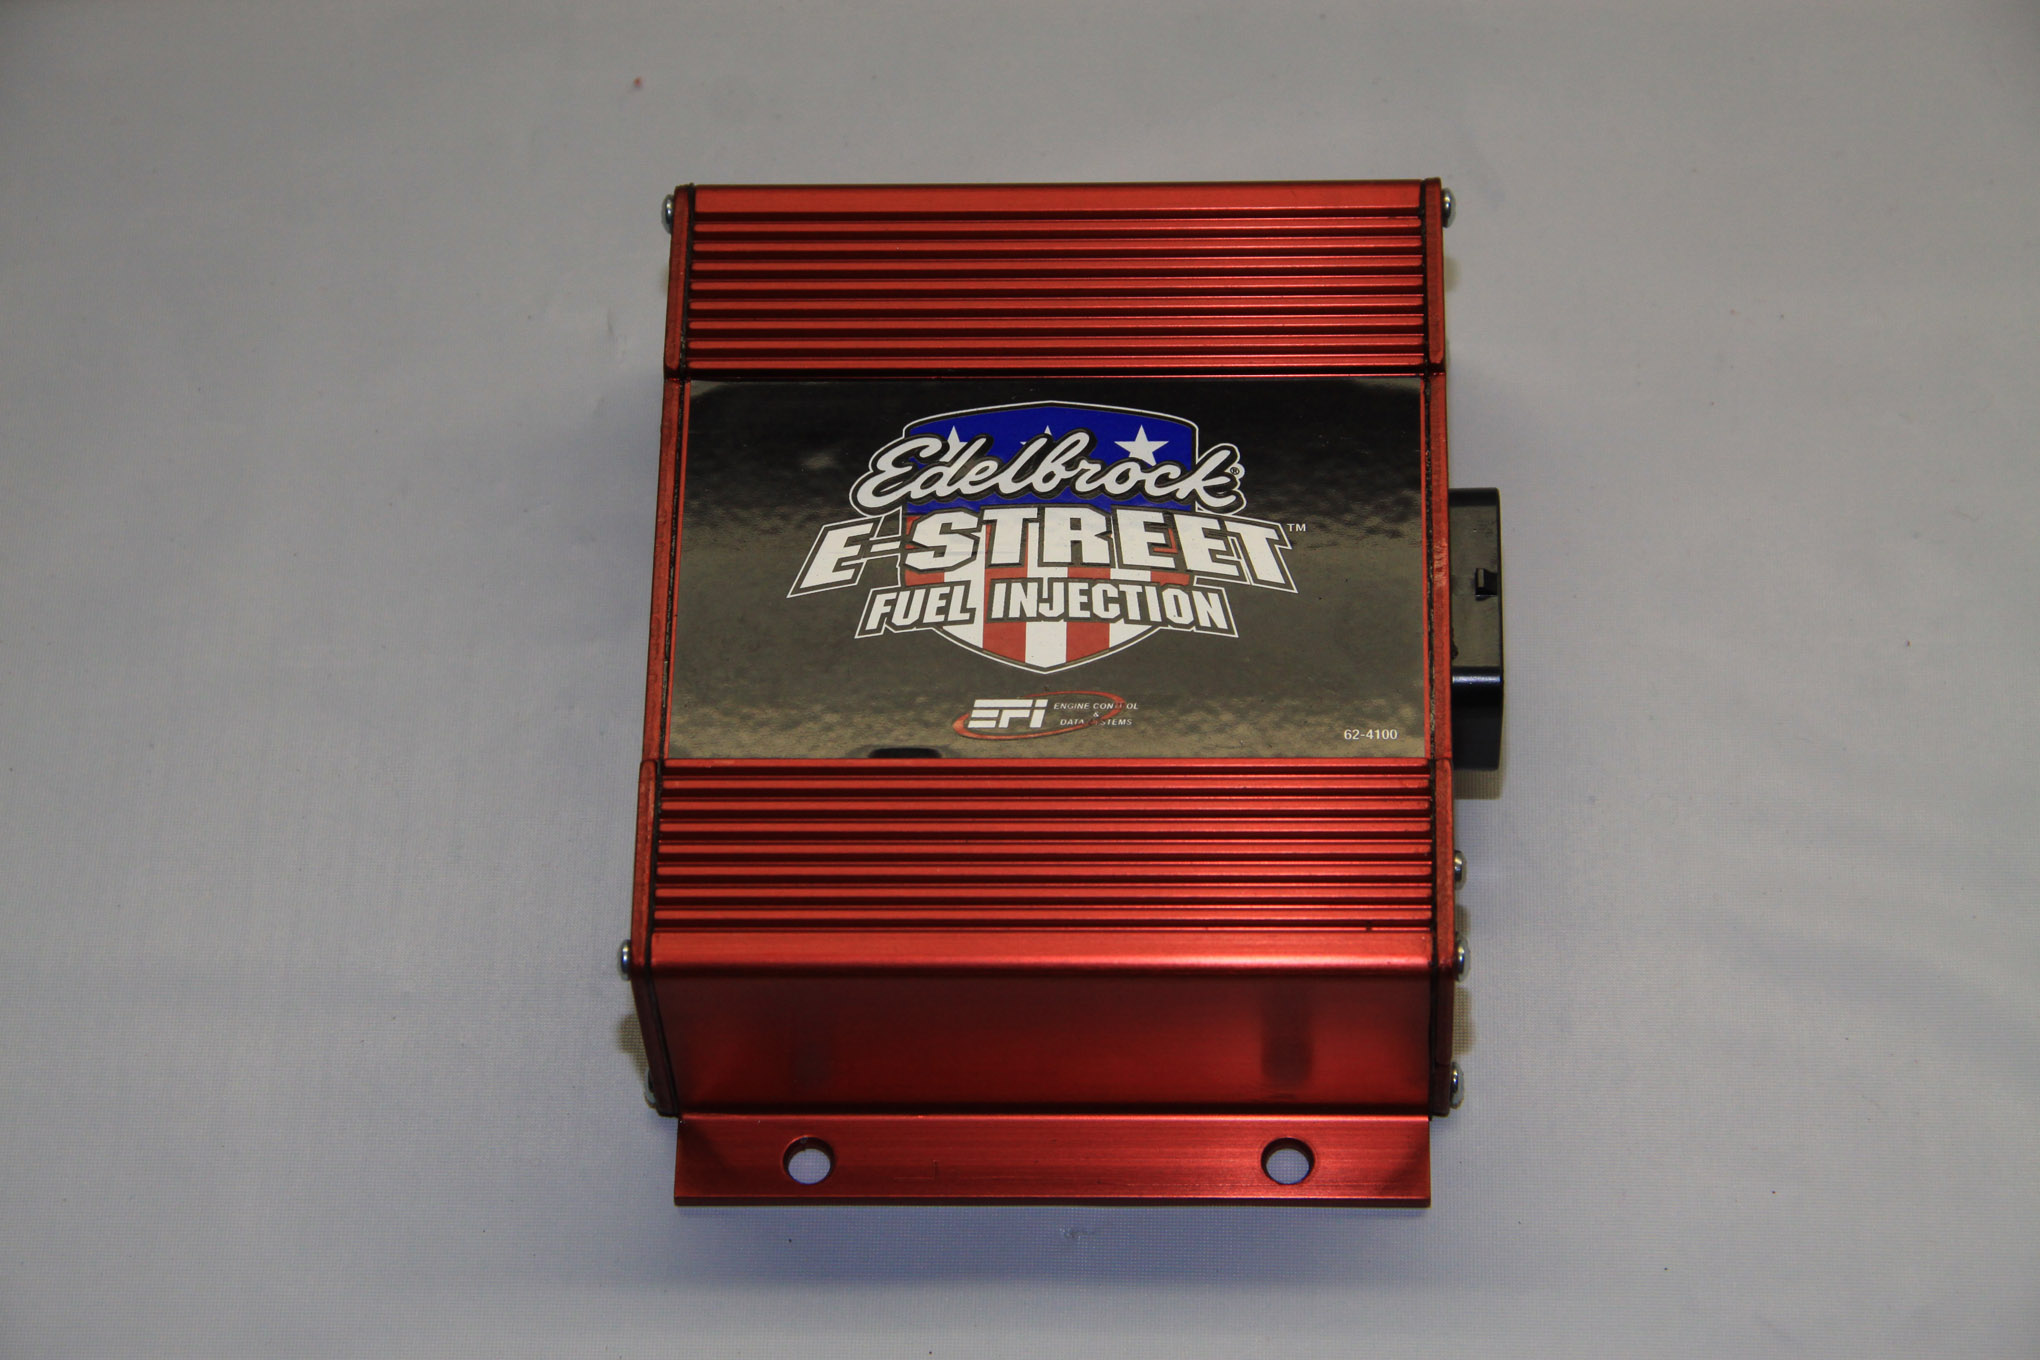 Edelbrock's sophisticated ECU comes with pre-loaded software, in operation with feedback from the oxygen sensor the system fine-tunes idle, cruise, and wide-open throttle air/fuel ratios. It is also capable of controlling two electric engine-cooling fans.